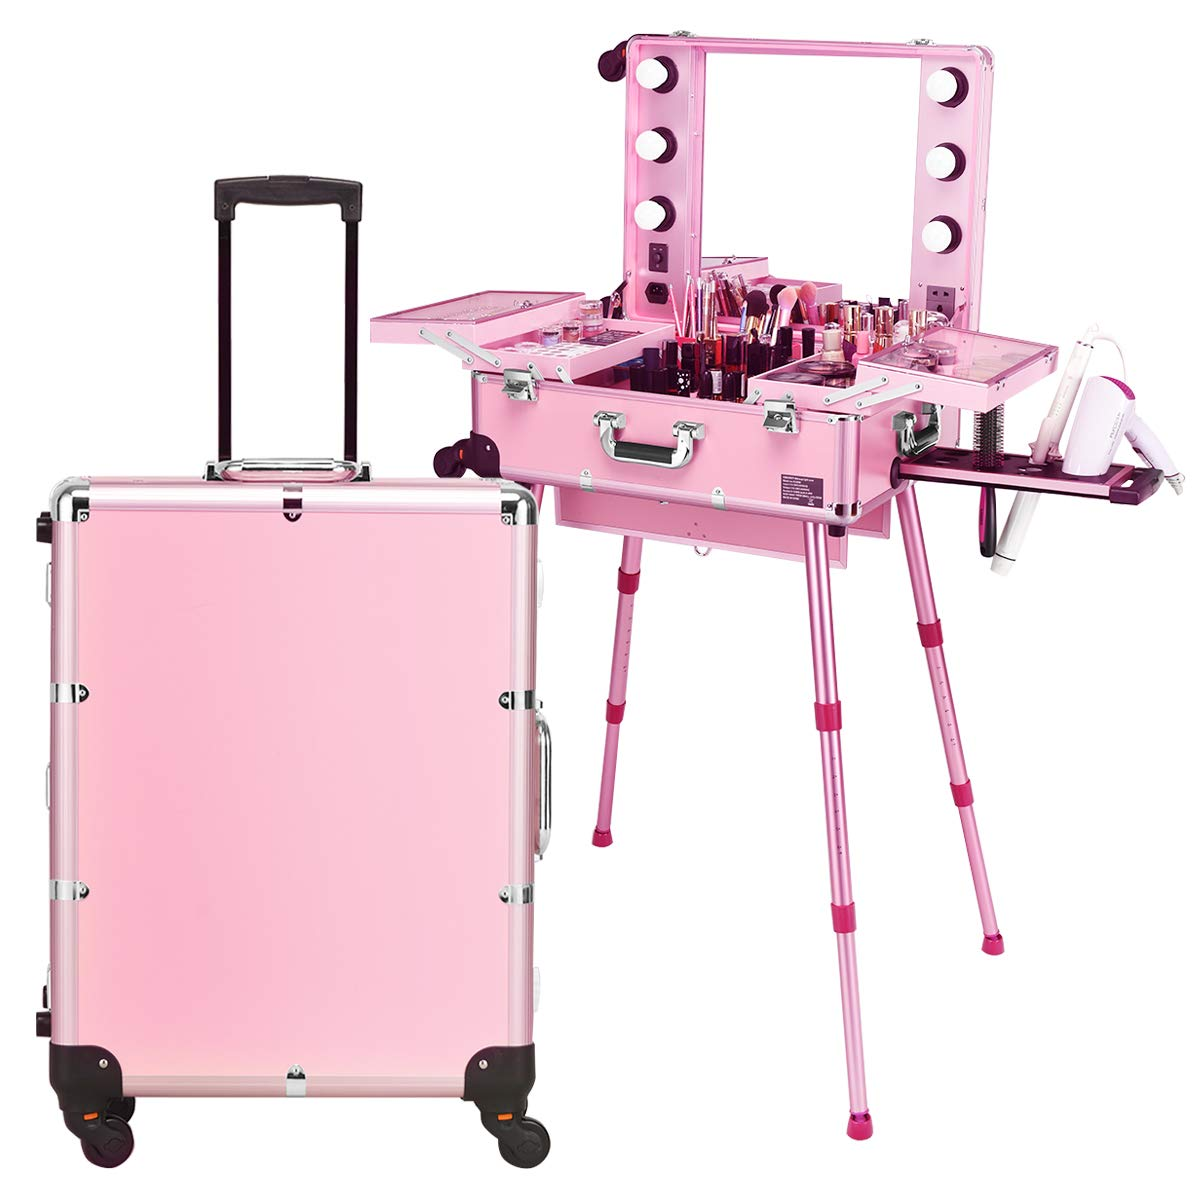 Giantex Rolling Cosmetics Case with Mirror, Cosmetic Case with Telescoping Legs, Six LED Lights, Makeup Train Case for Dressing Room Wedding Makeup Room, Makeup Case with Several Dividers (Pink) by Giantex